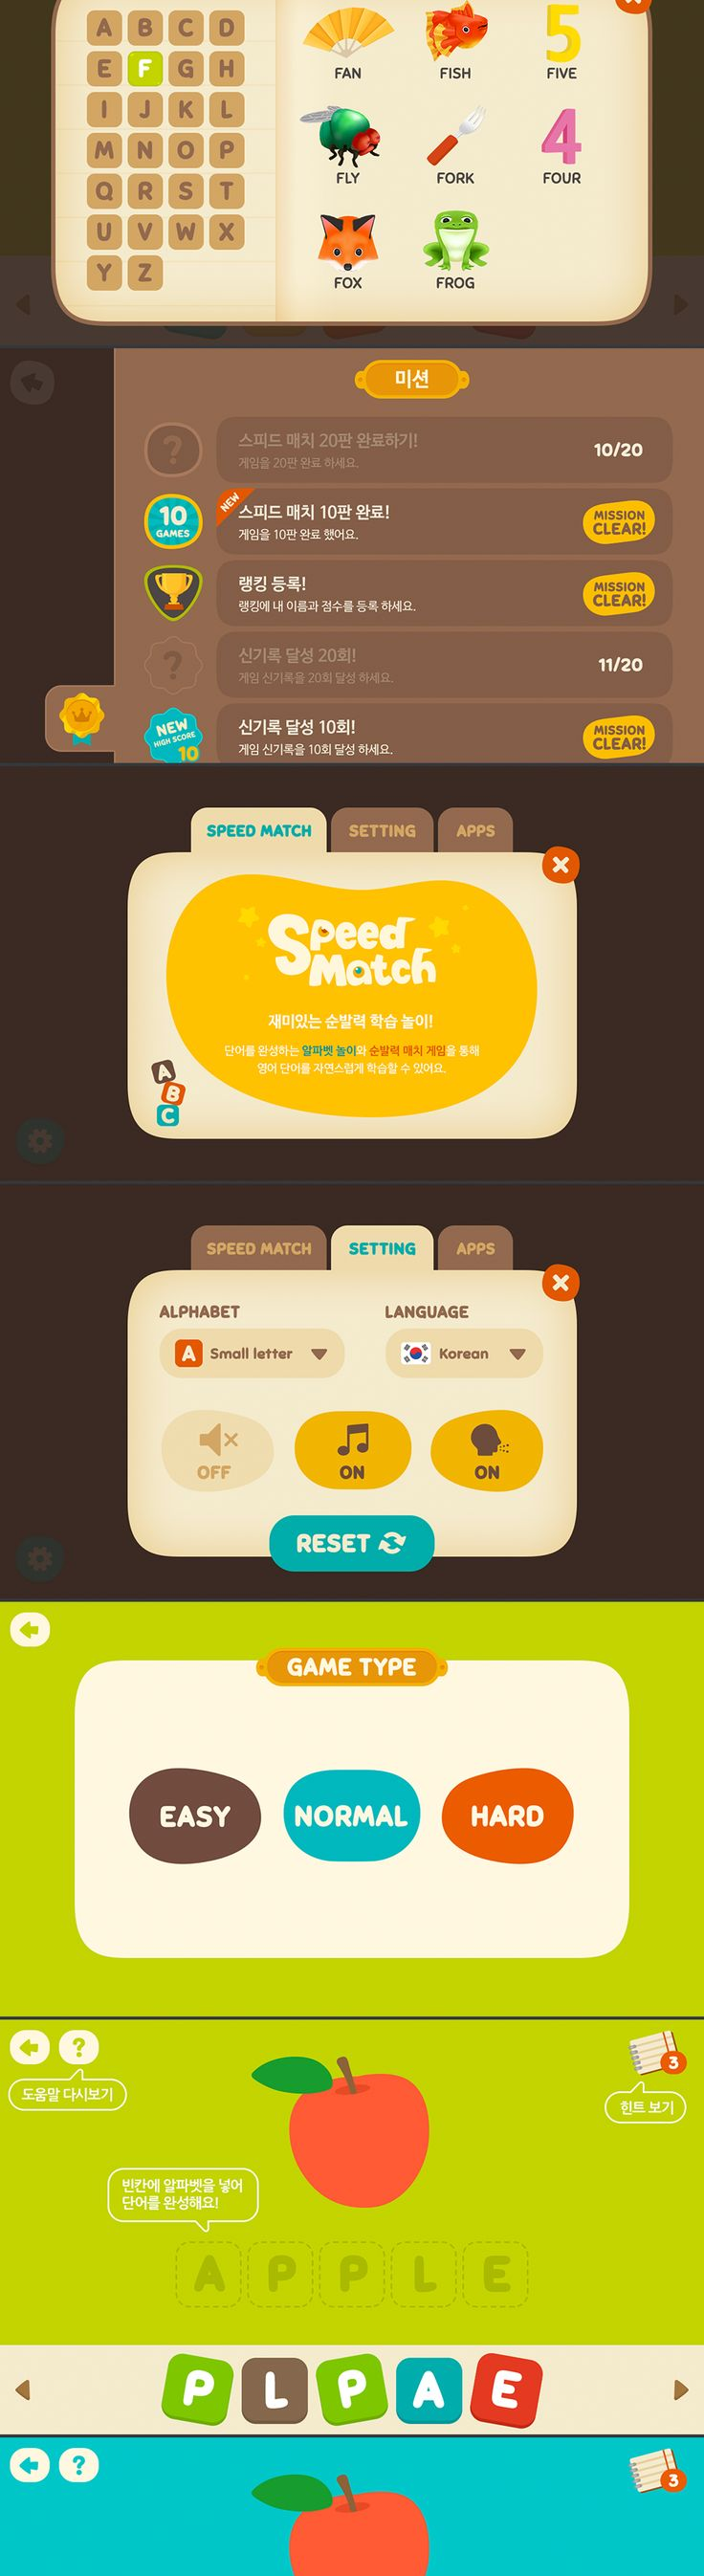 Speed Match App | Layer